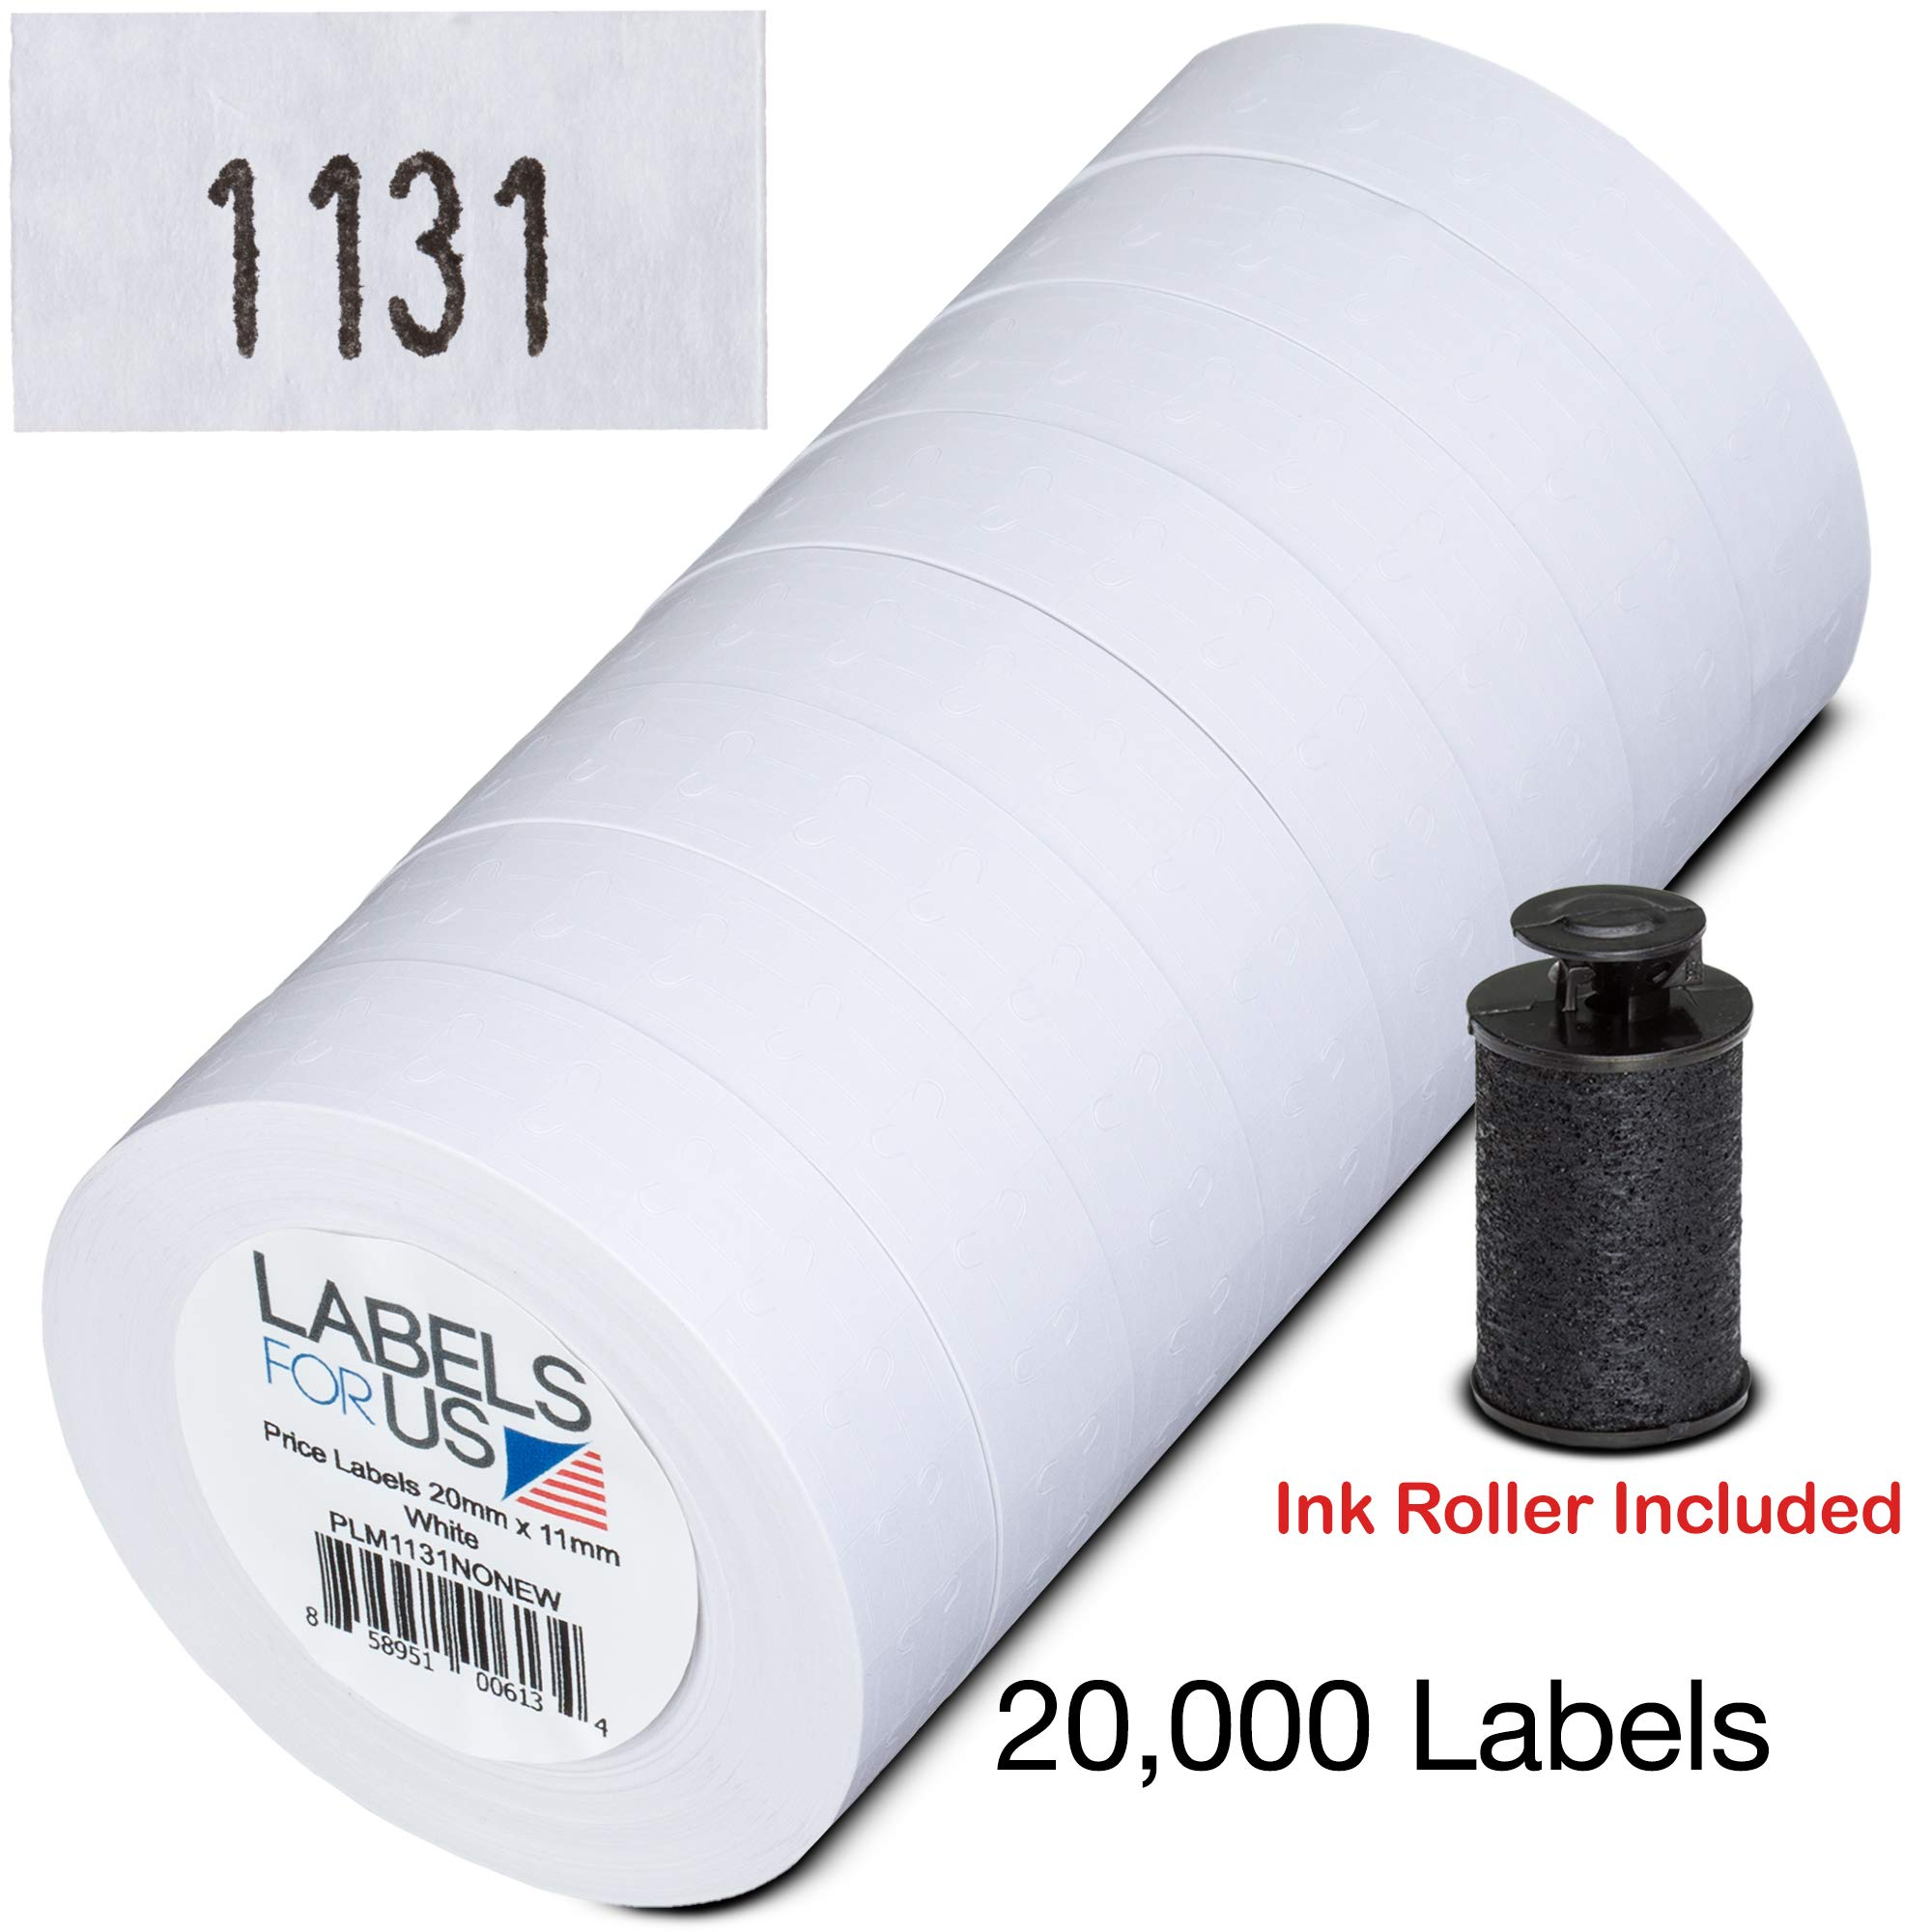 Labels for Us - Monarch 1131 Compatible Labels - White - 20,000 Labels - Pack with 8 rolls by Labels for Us